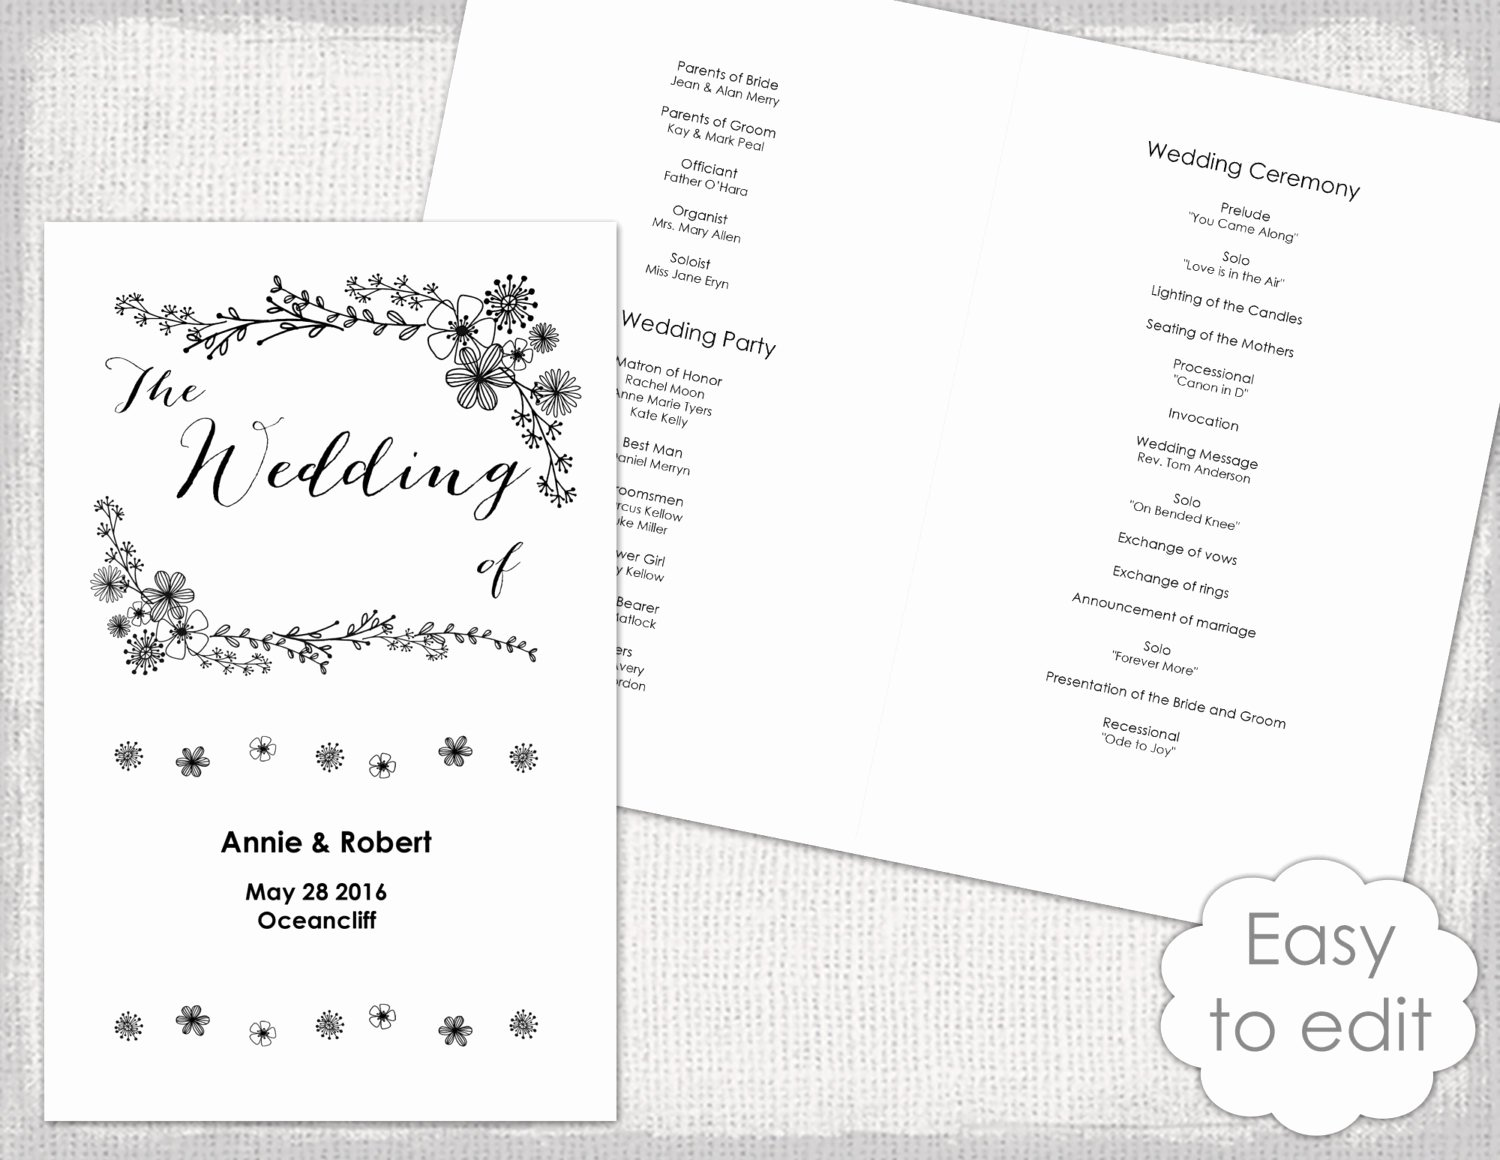 Wedding Programs Booklet Template Full Version Free